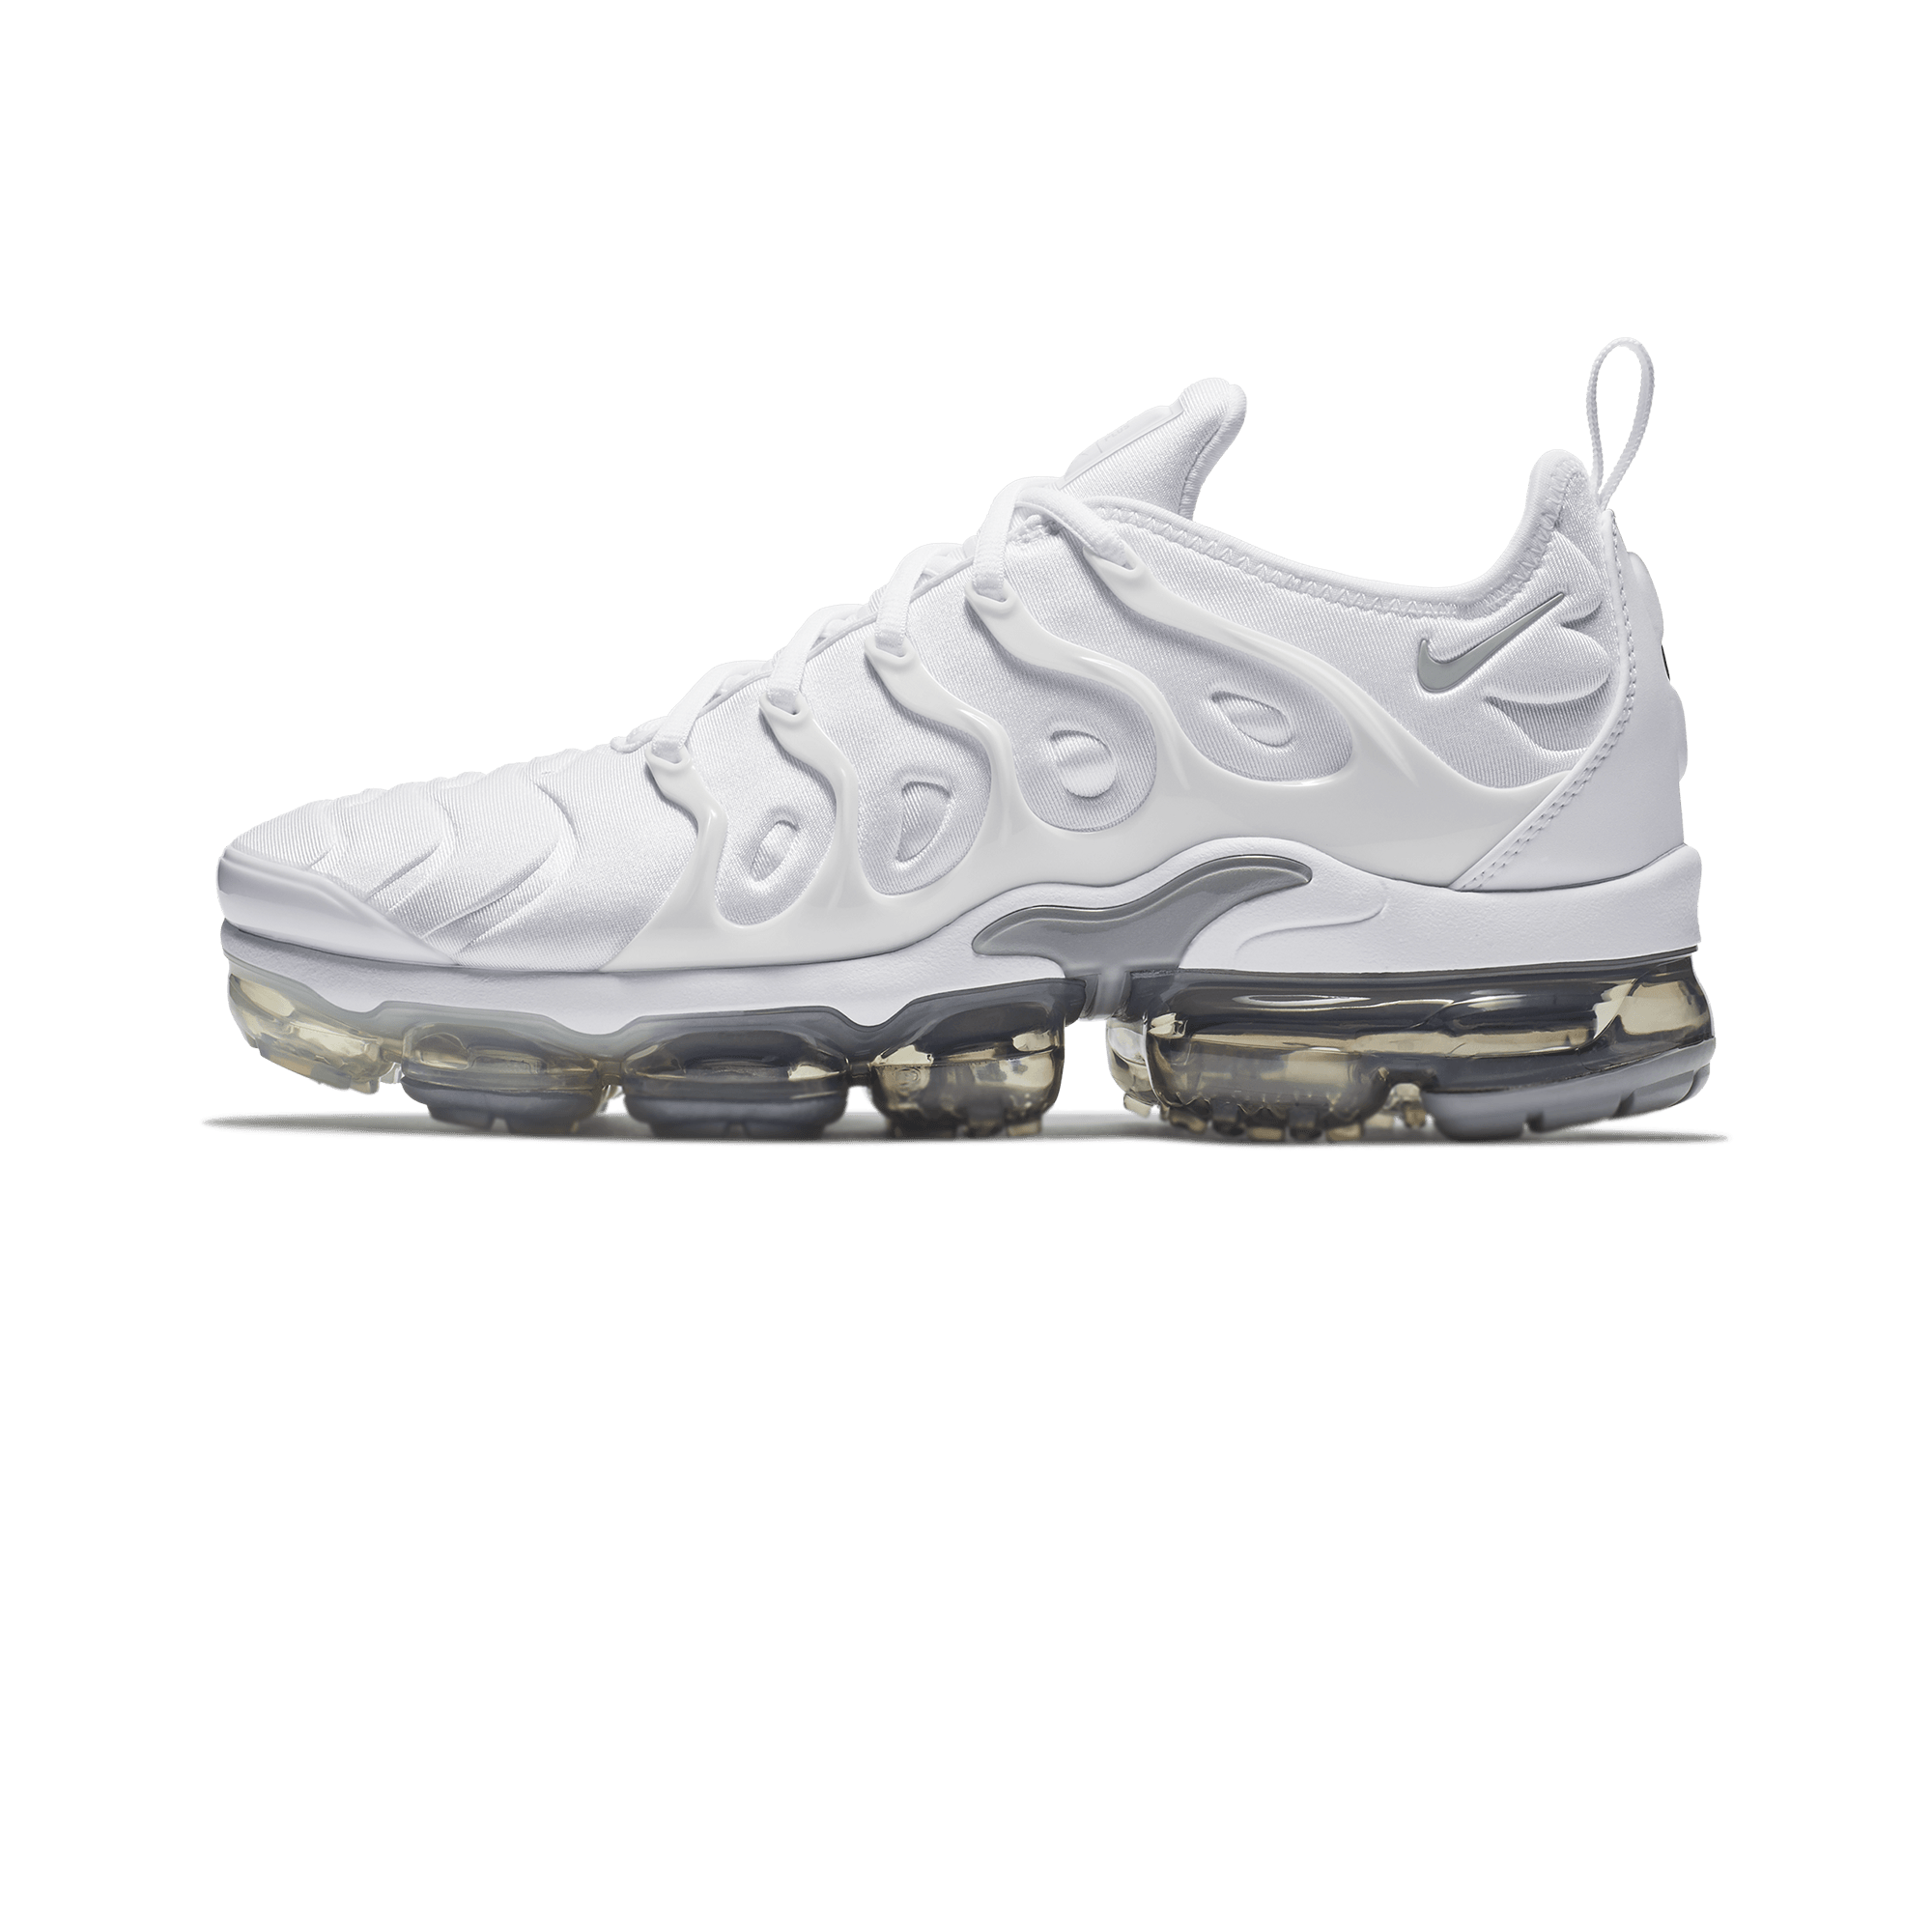 buy popular 5db25 372fd Nike Air Vapormax Plus white / pure platinum / wolf grey - Men |  Holypopstore.com